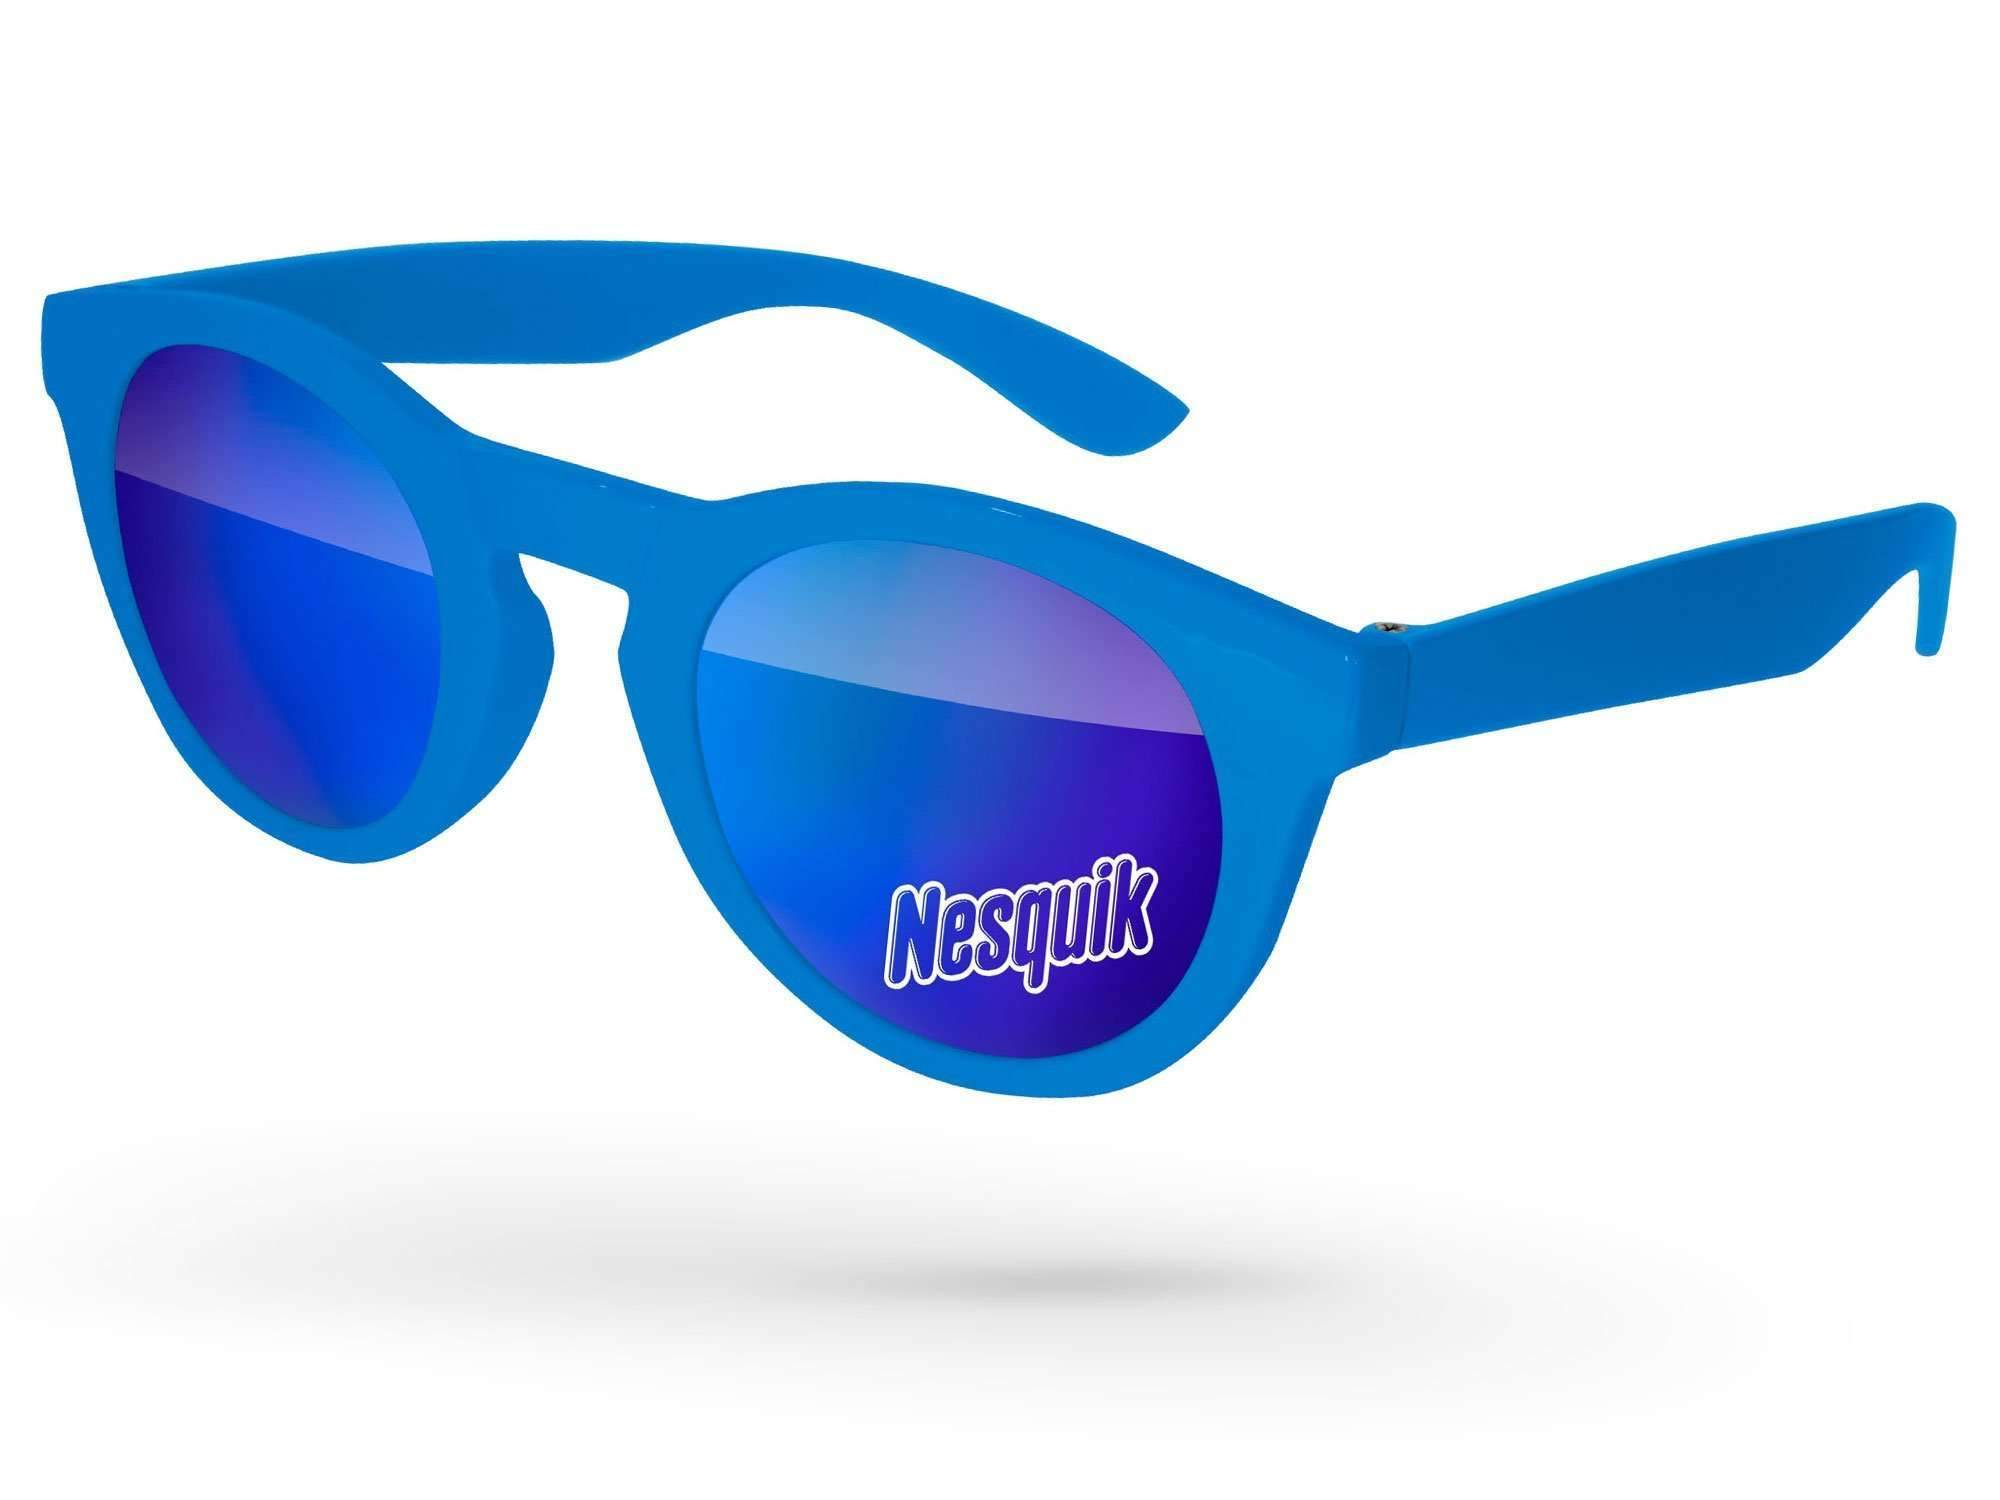 DM500 - Andy Mirror Promotional Sunglasses w/ 1-color lens imprint